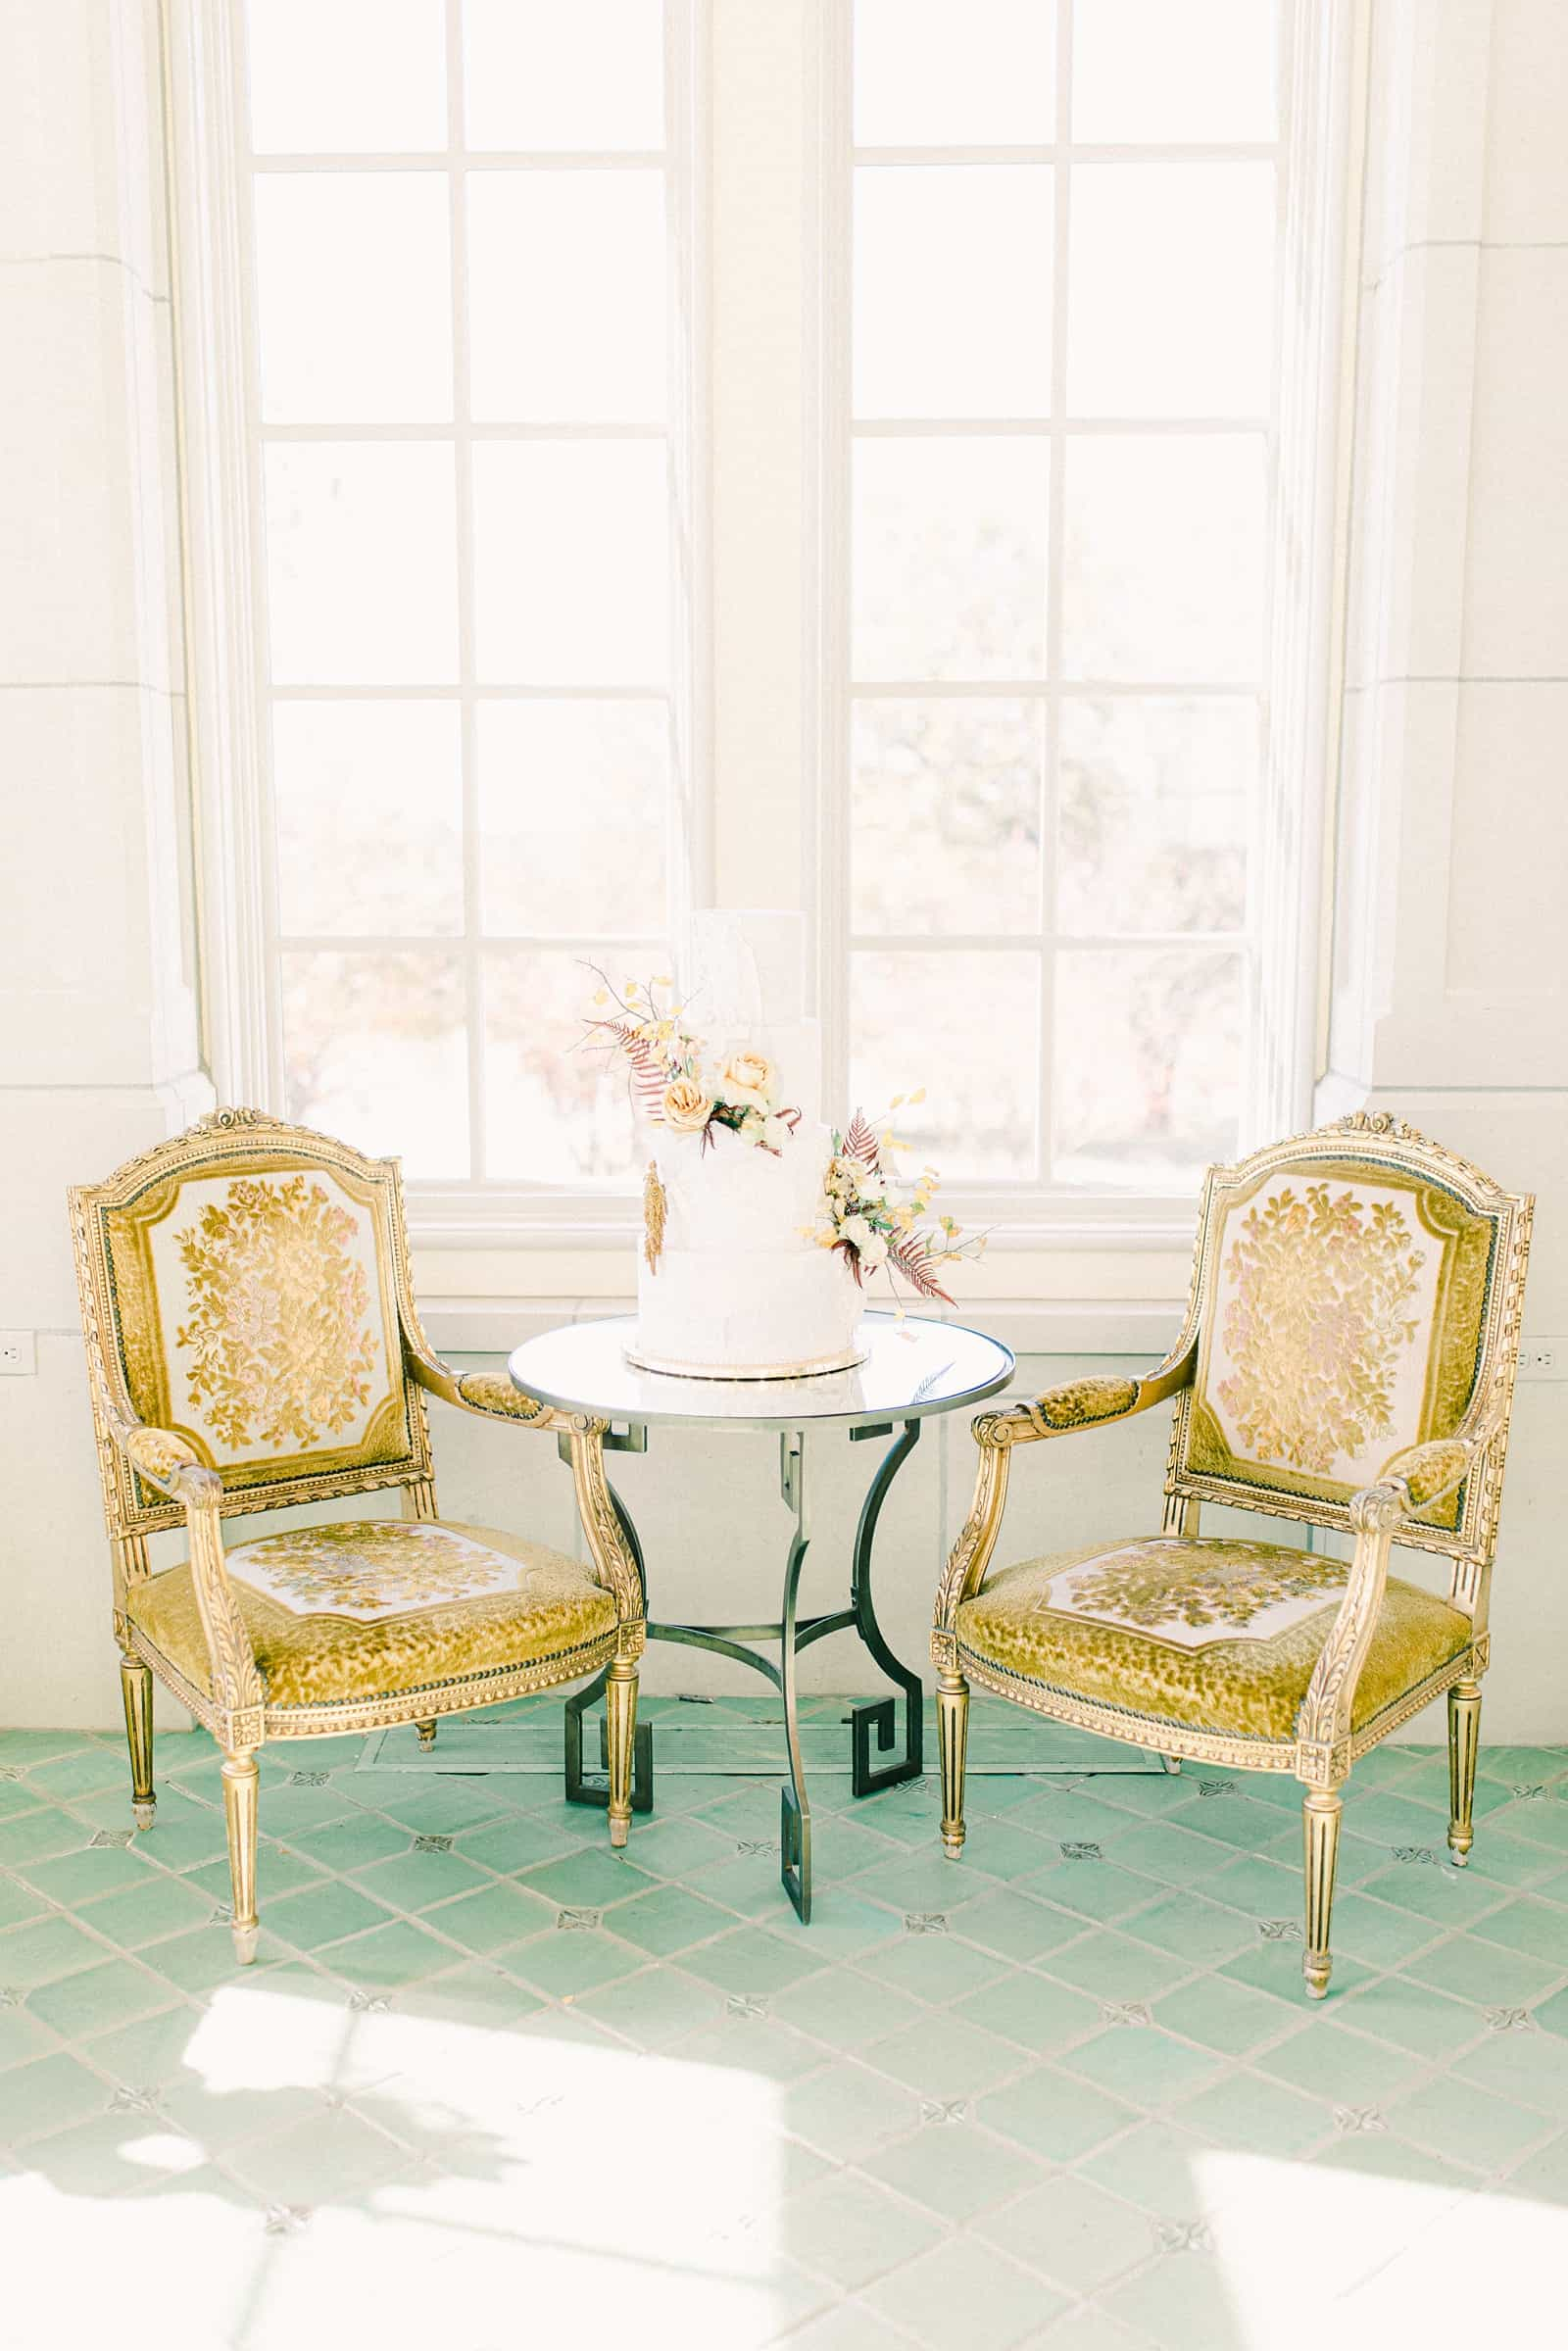 French inspired gold chairs with white, four tiered boho wedding cake